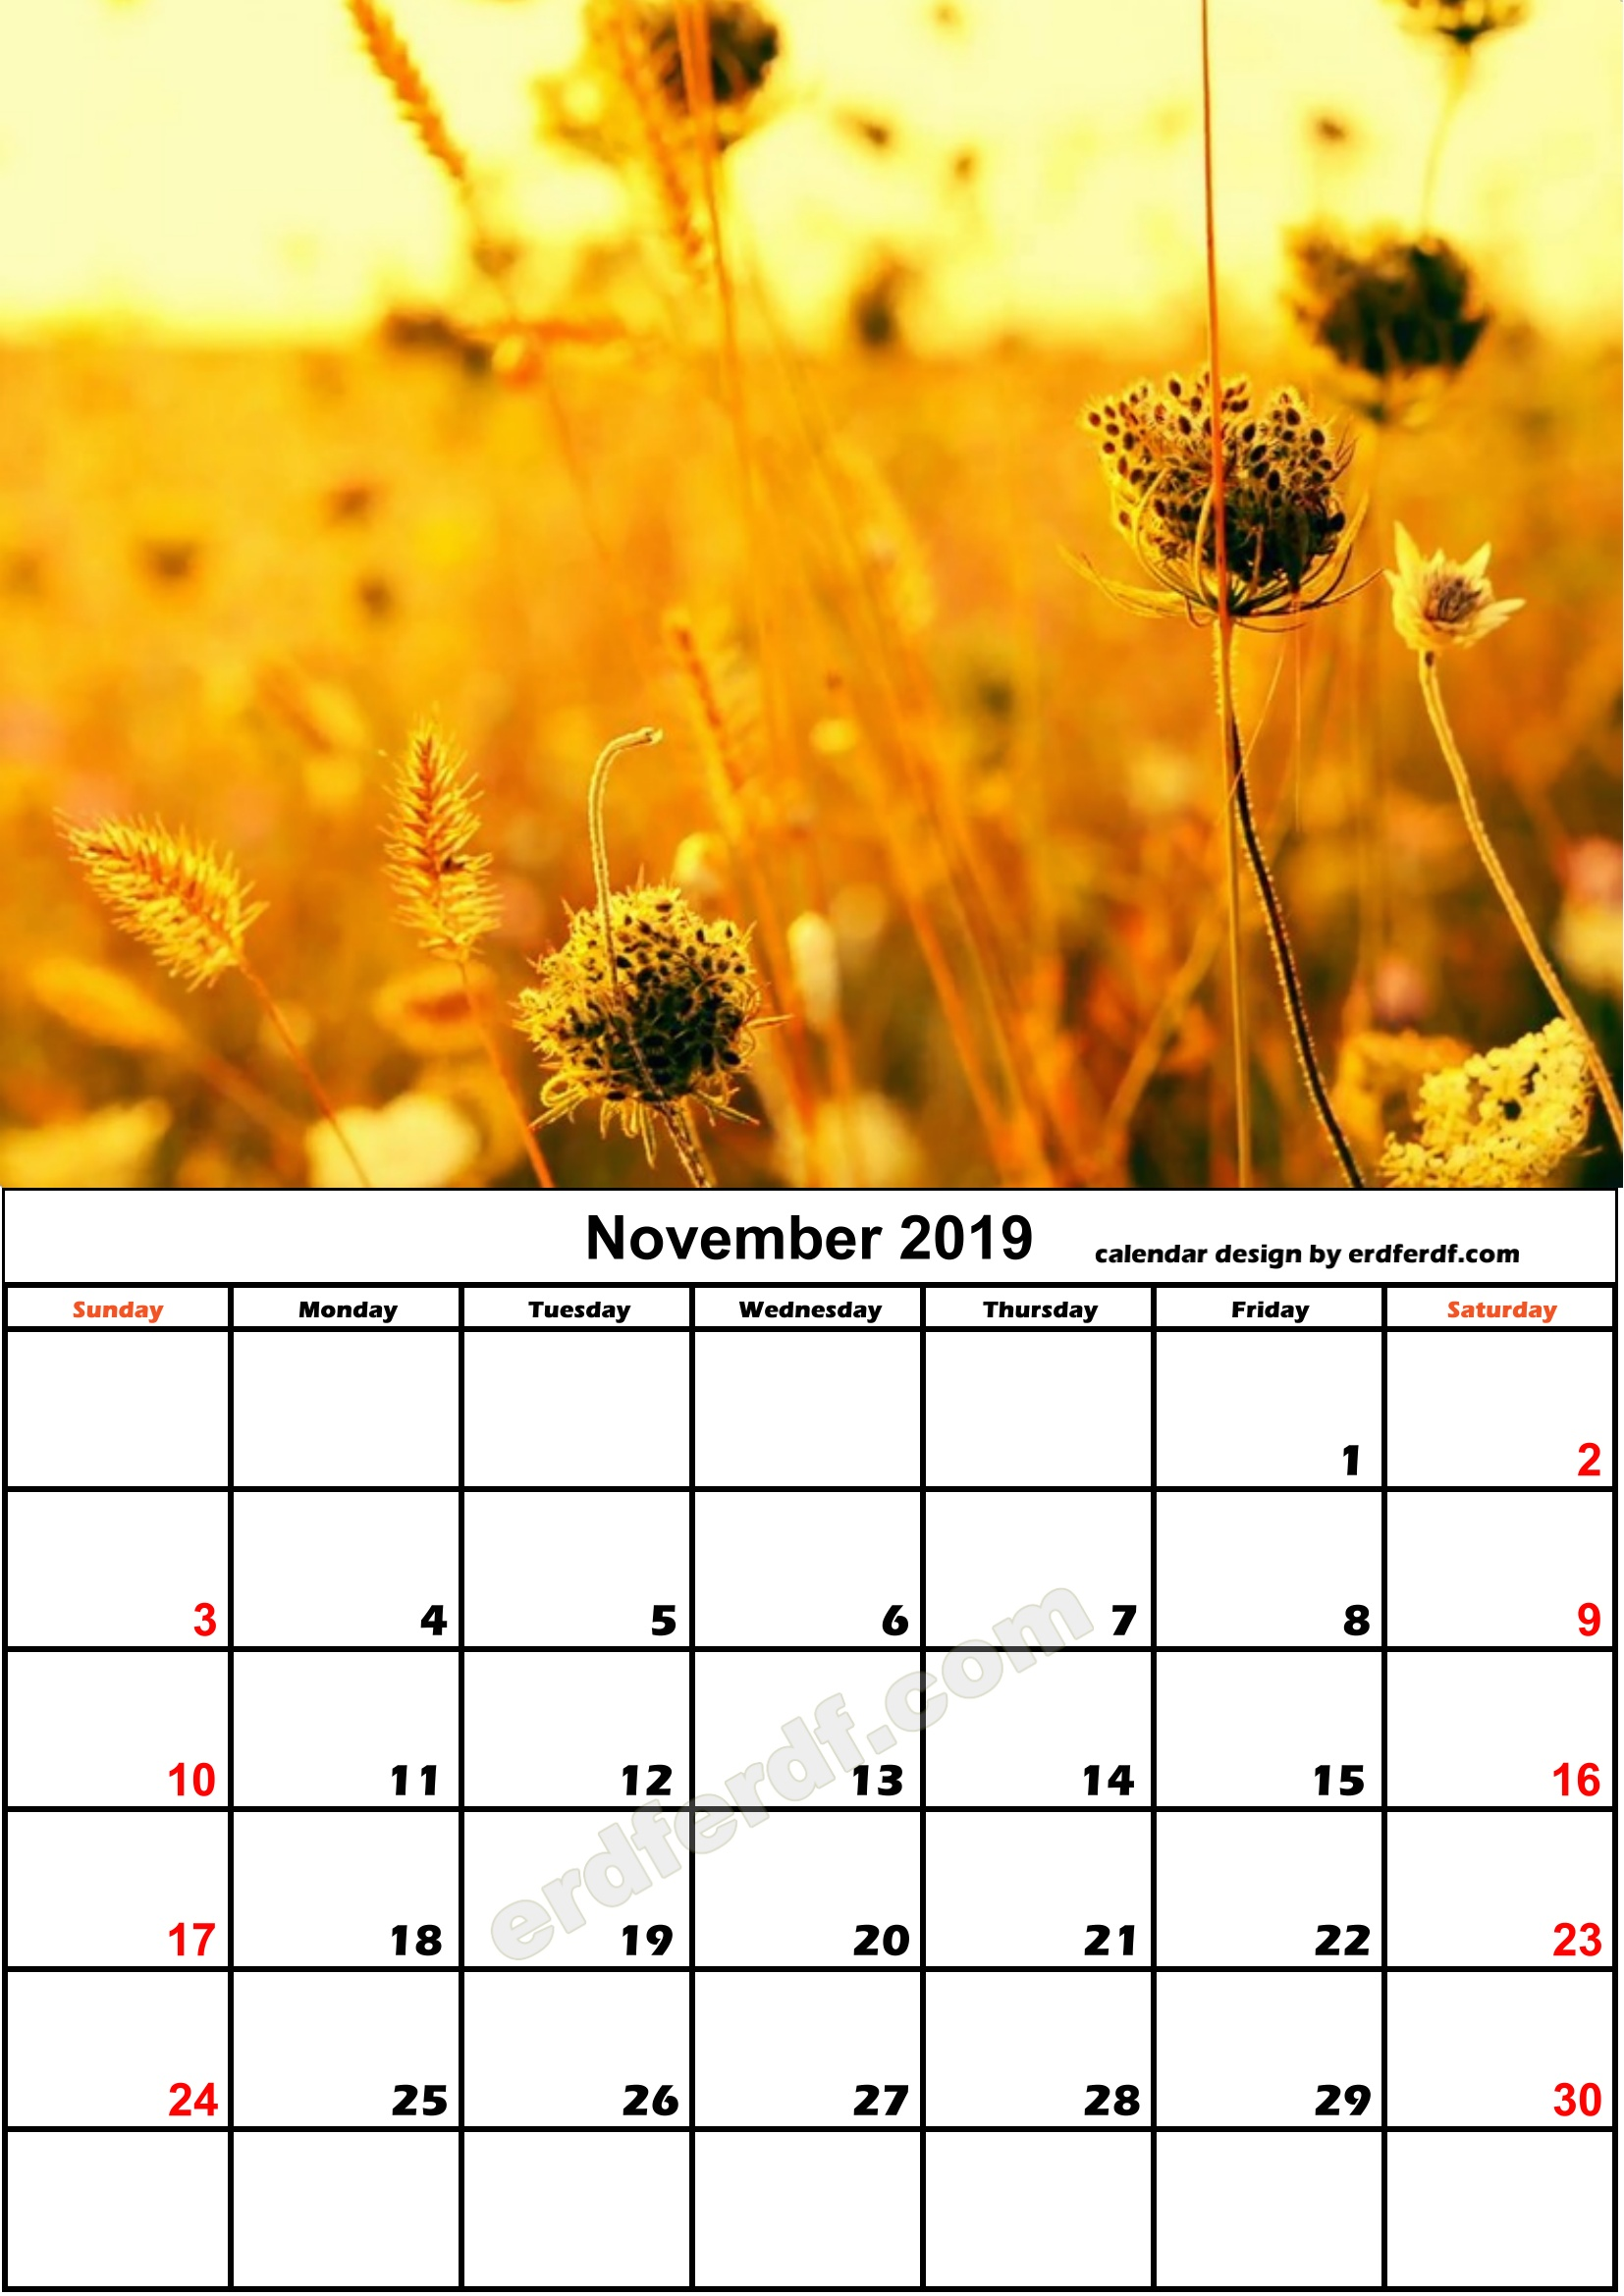 11 November Flower Nature Calendar Monthly 2019 Free Download